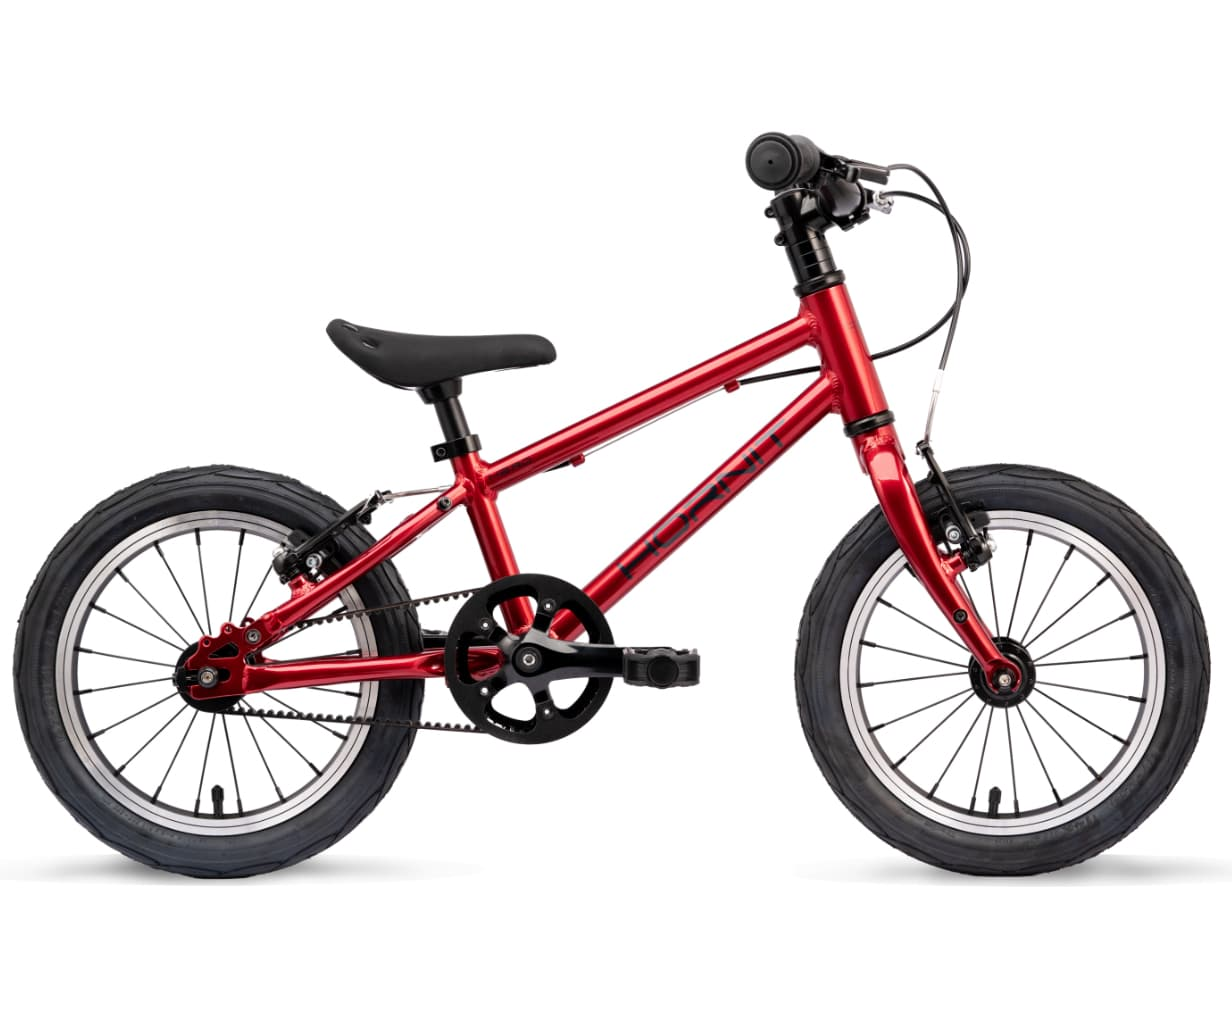 Hornit Hero 16 - a kids bike with a belt drive train rather than a chain